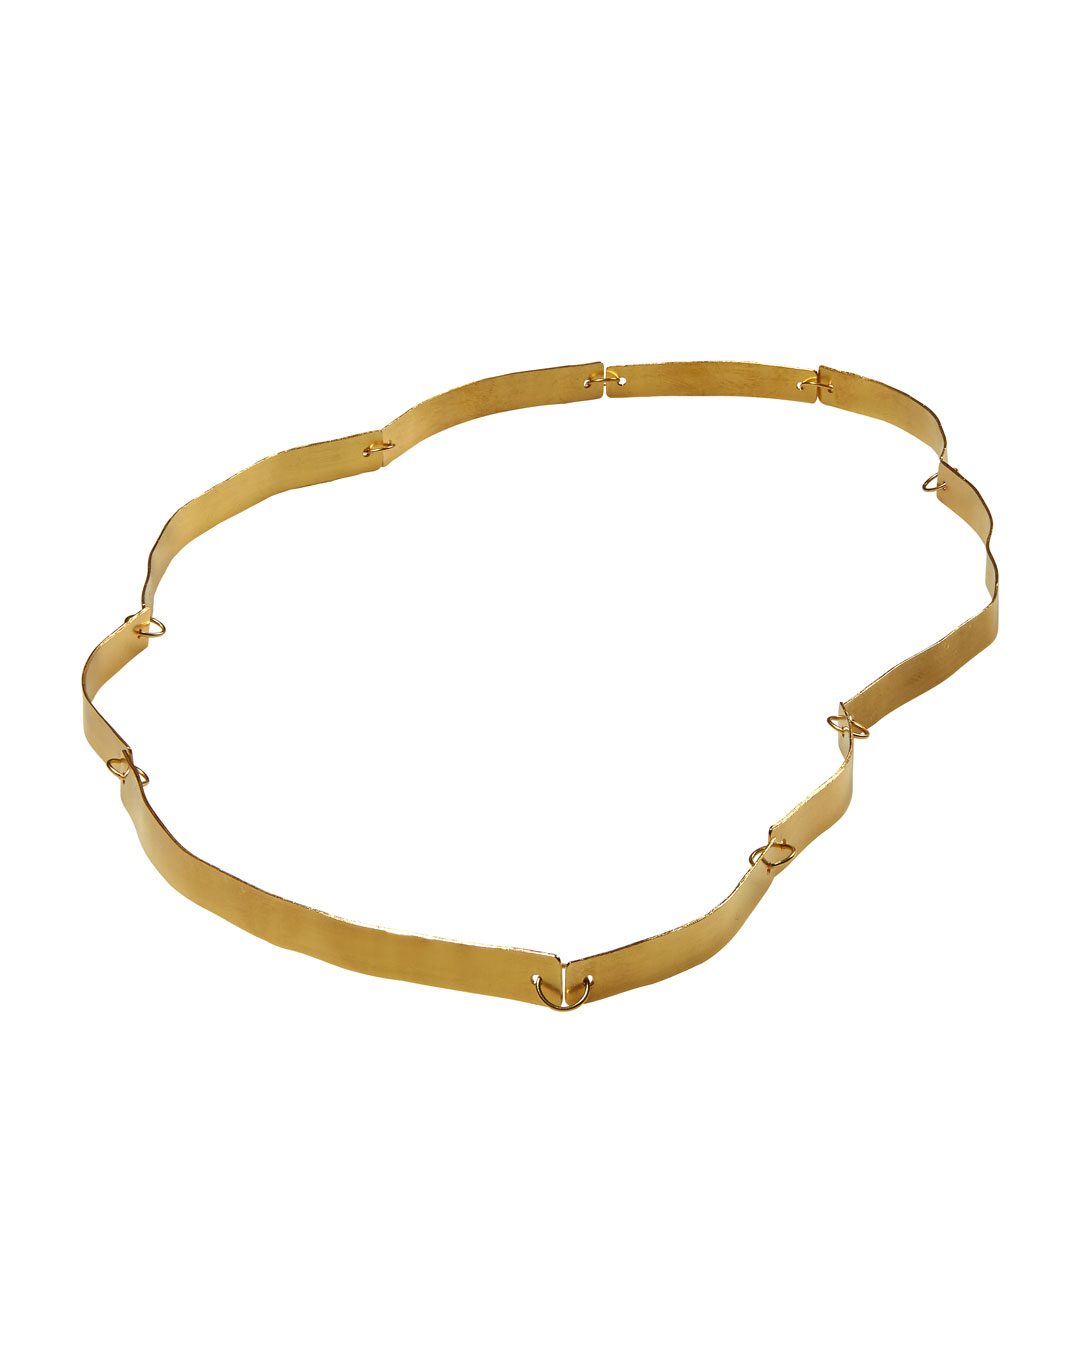 Annelies Planteijdt, Mooie stad - Gouden water (Beautiful City - Golden Water), 2020, necklace; 18ct gold, 640 mm, €8100